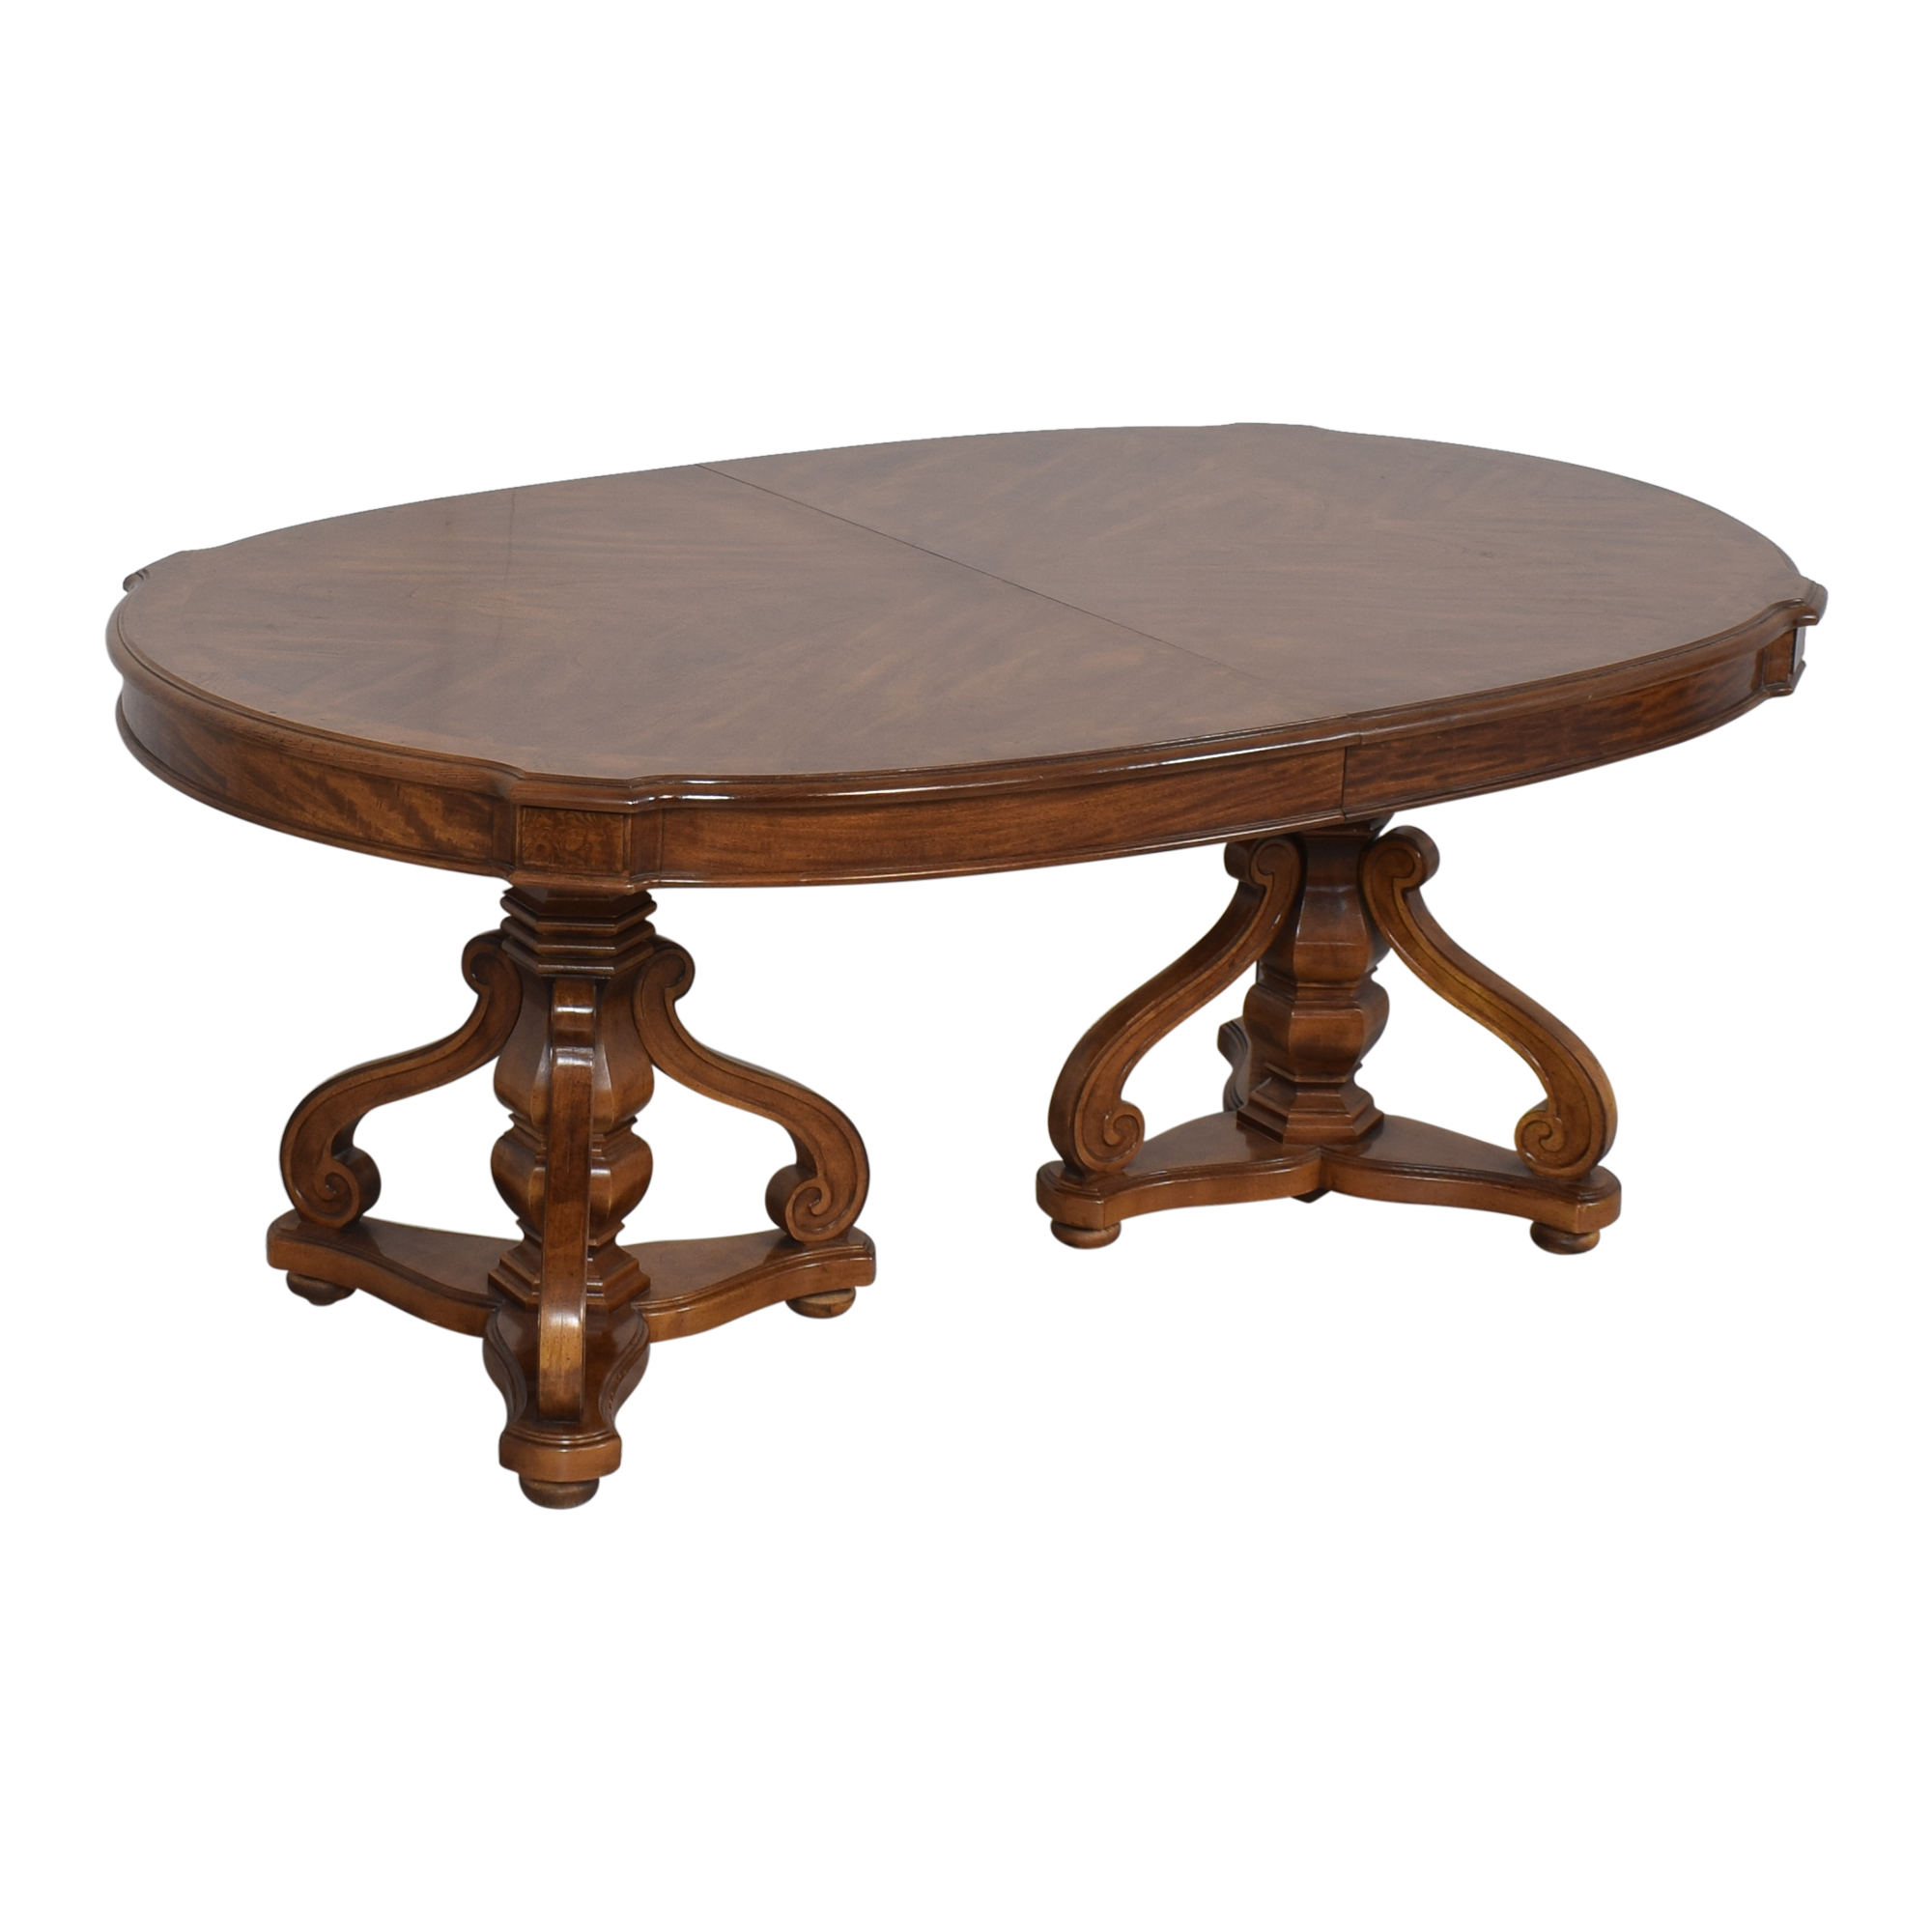 Thomasville Thomasville Extension Dining Table discount